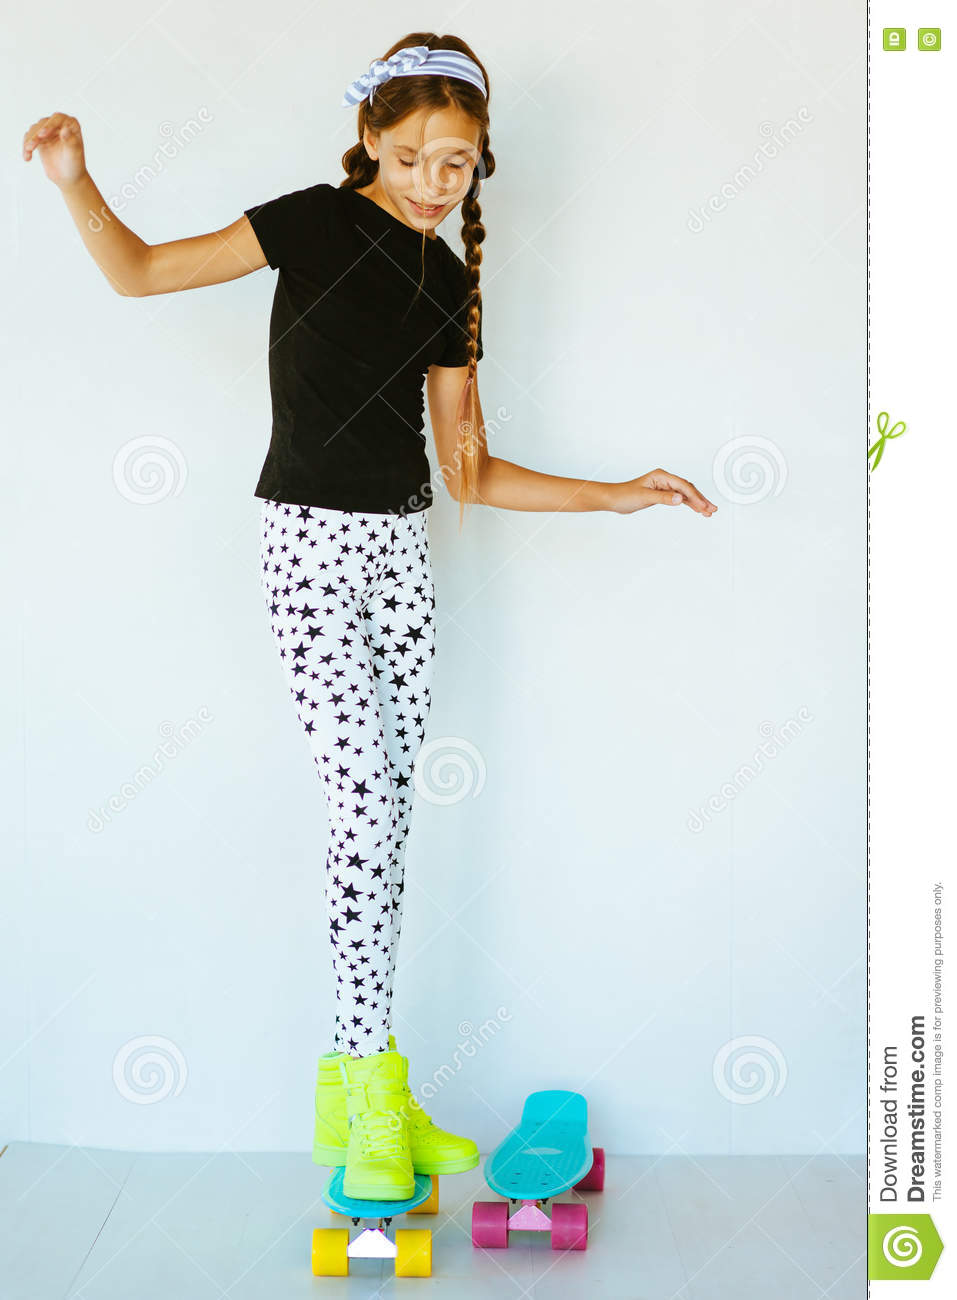 Colorful Teen Stock Image Image Of Lipstick Portrait: Teenage Skater Stock Photo